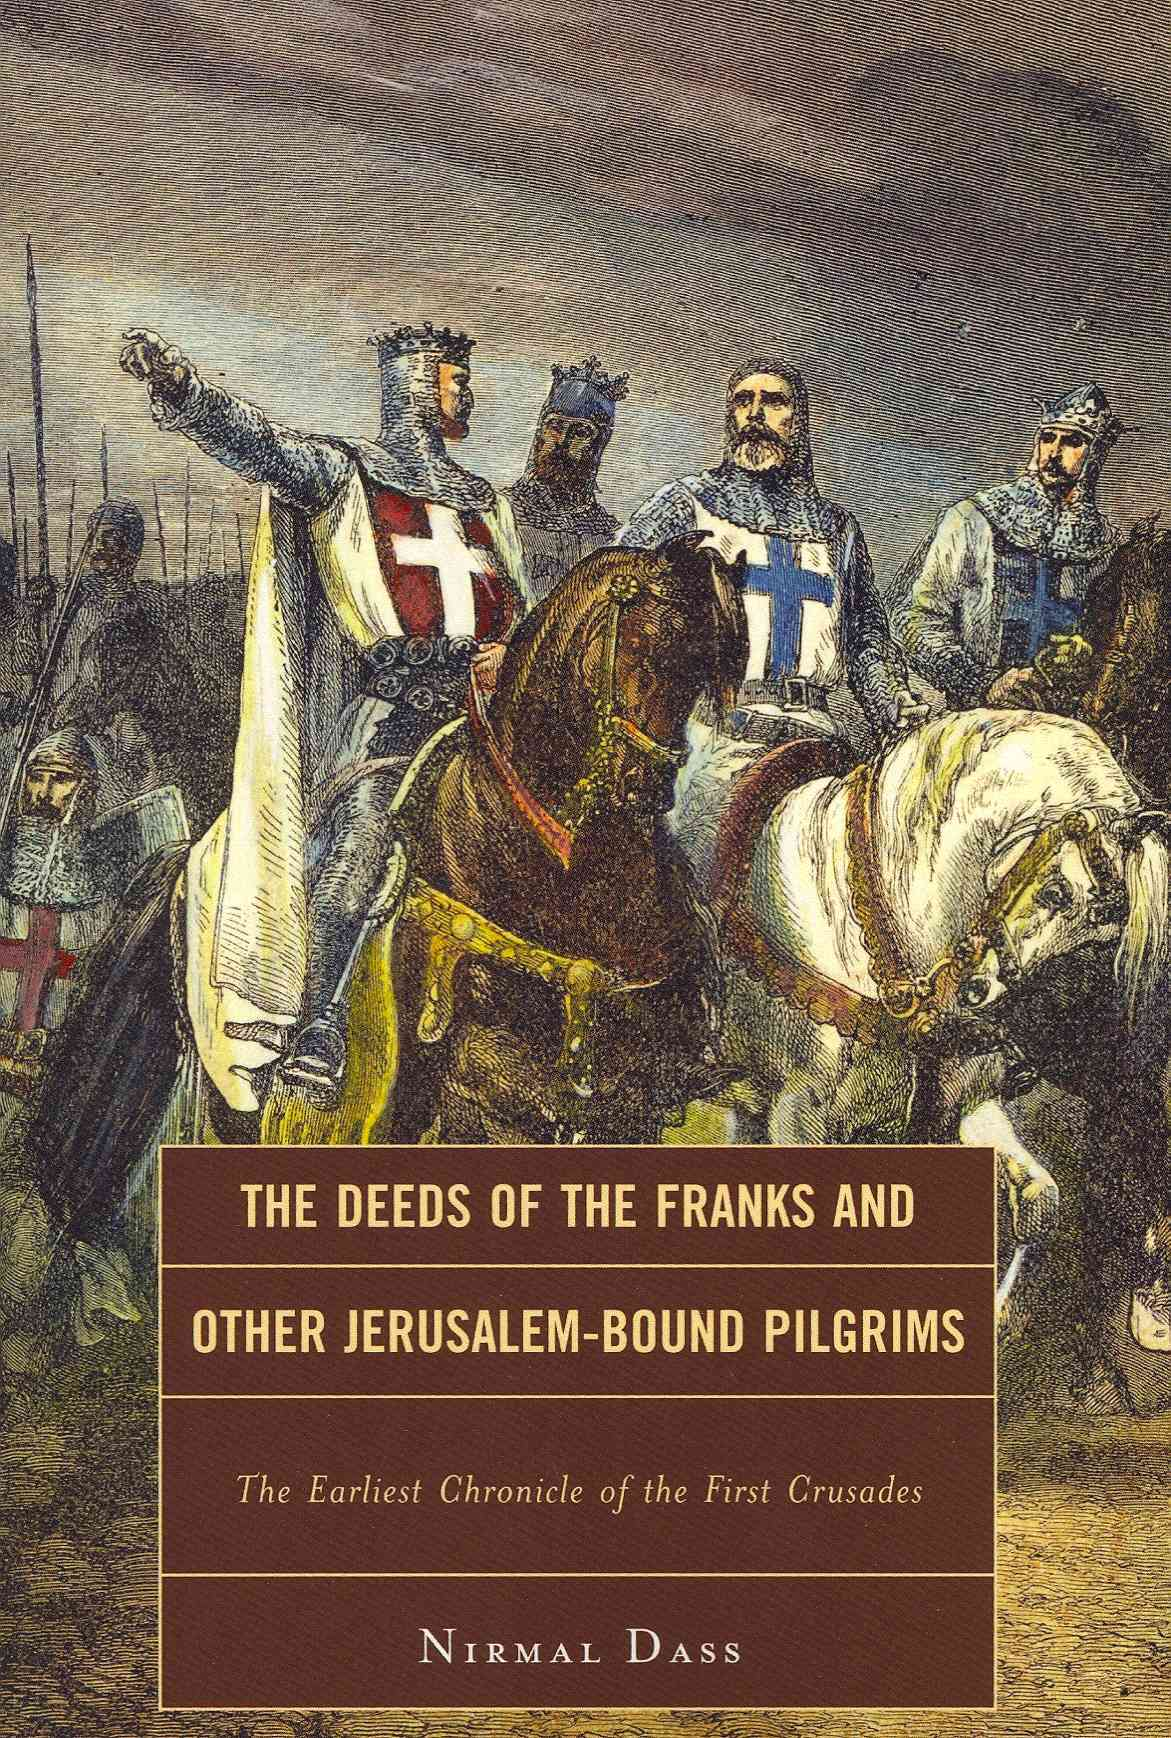 The Deeds of the Franks and Other Jerusalem-Bound Pilgrims: The Earliest Chronicle of the First Crusades (Paperback)